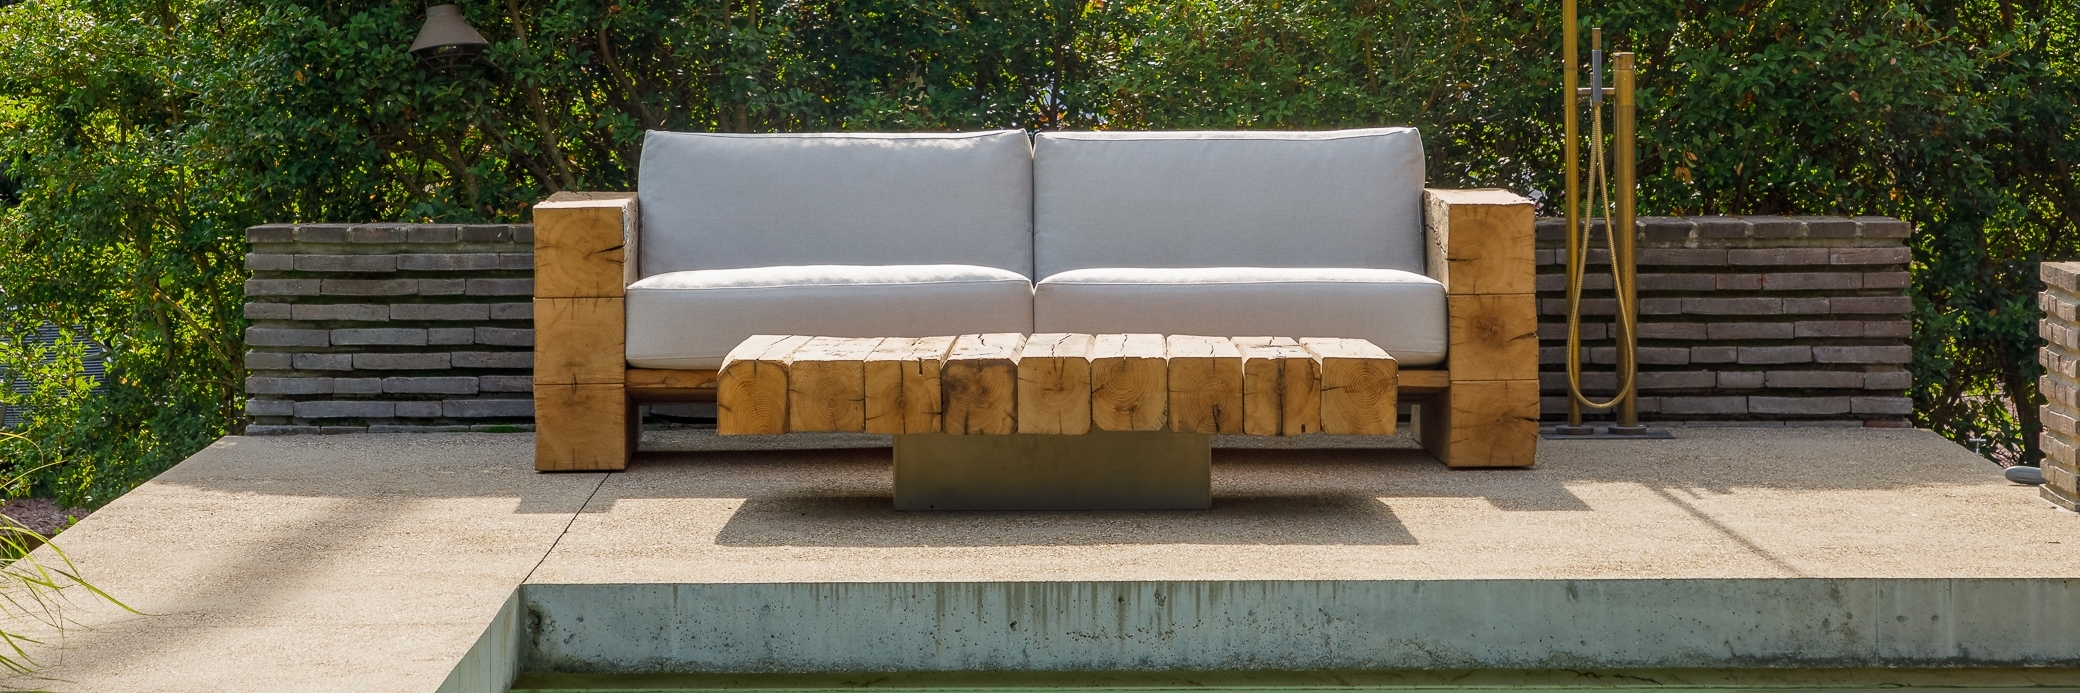 Outdoor Rustic Wooden Sofas | Sustainable - Made in France | Oakâme